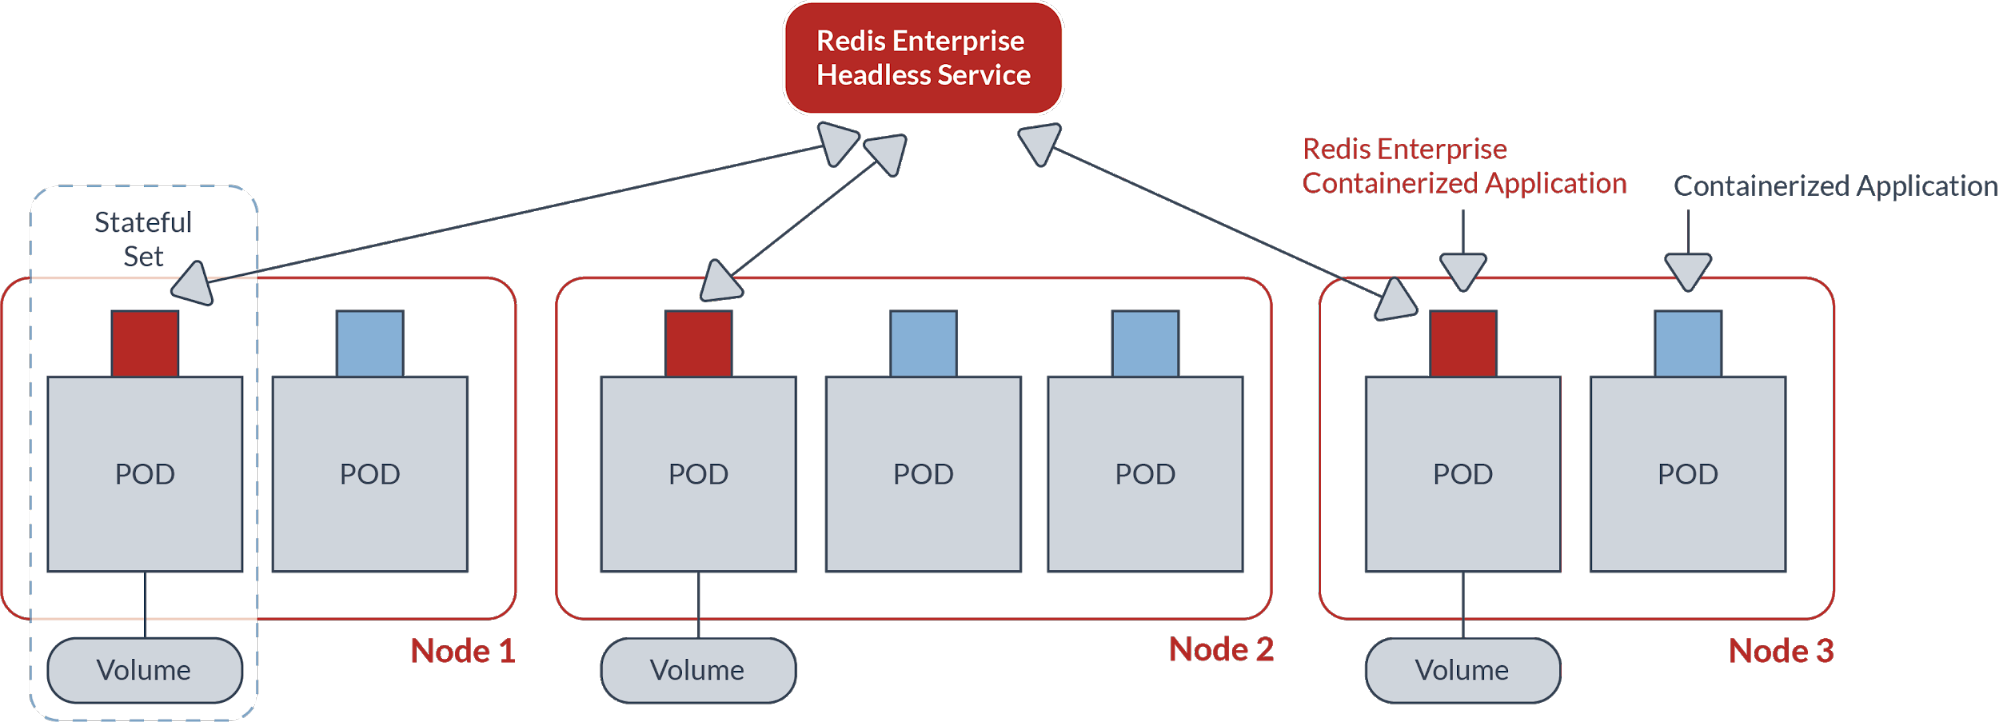 Redis Enterprise Kubernetes Release on Pivotal Container